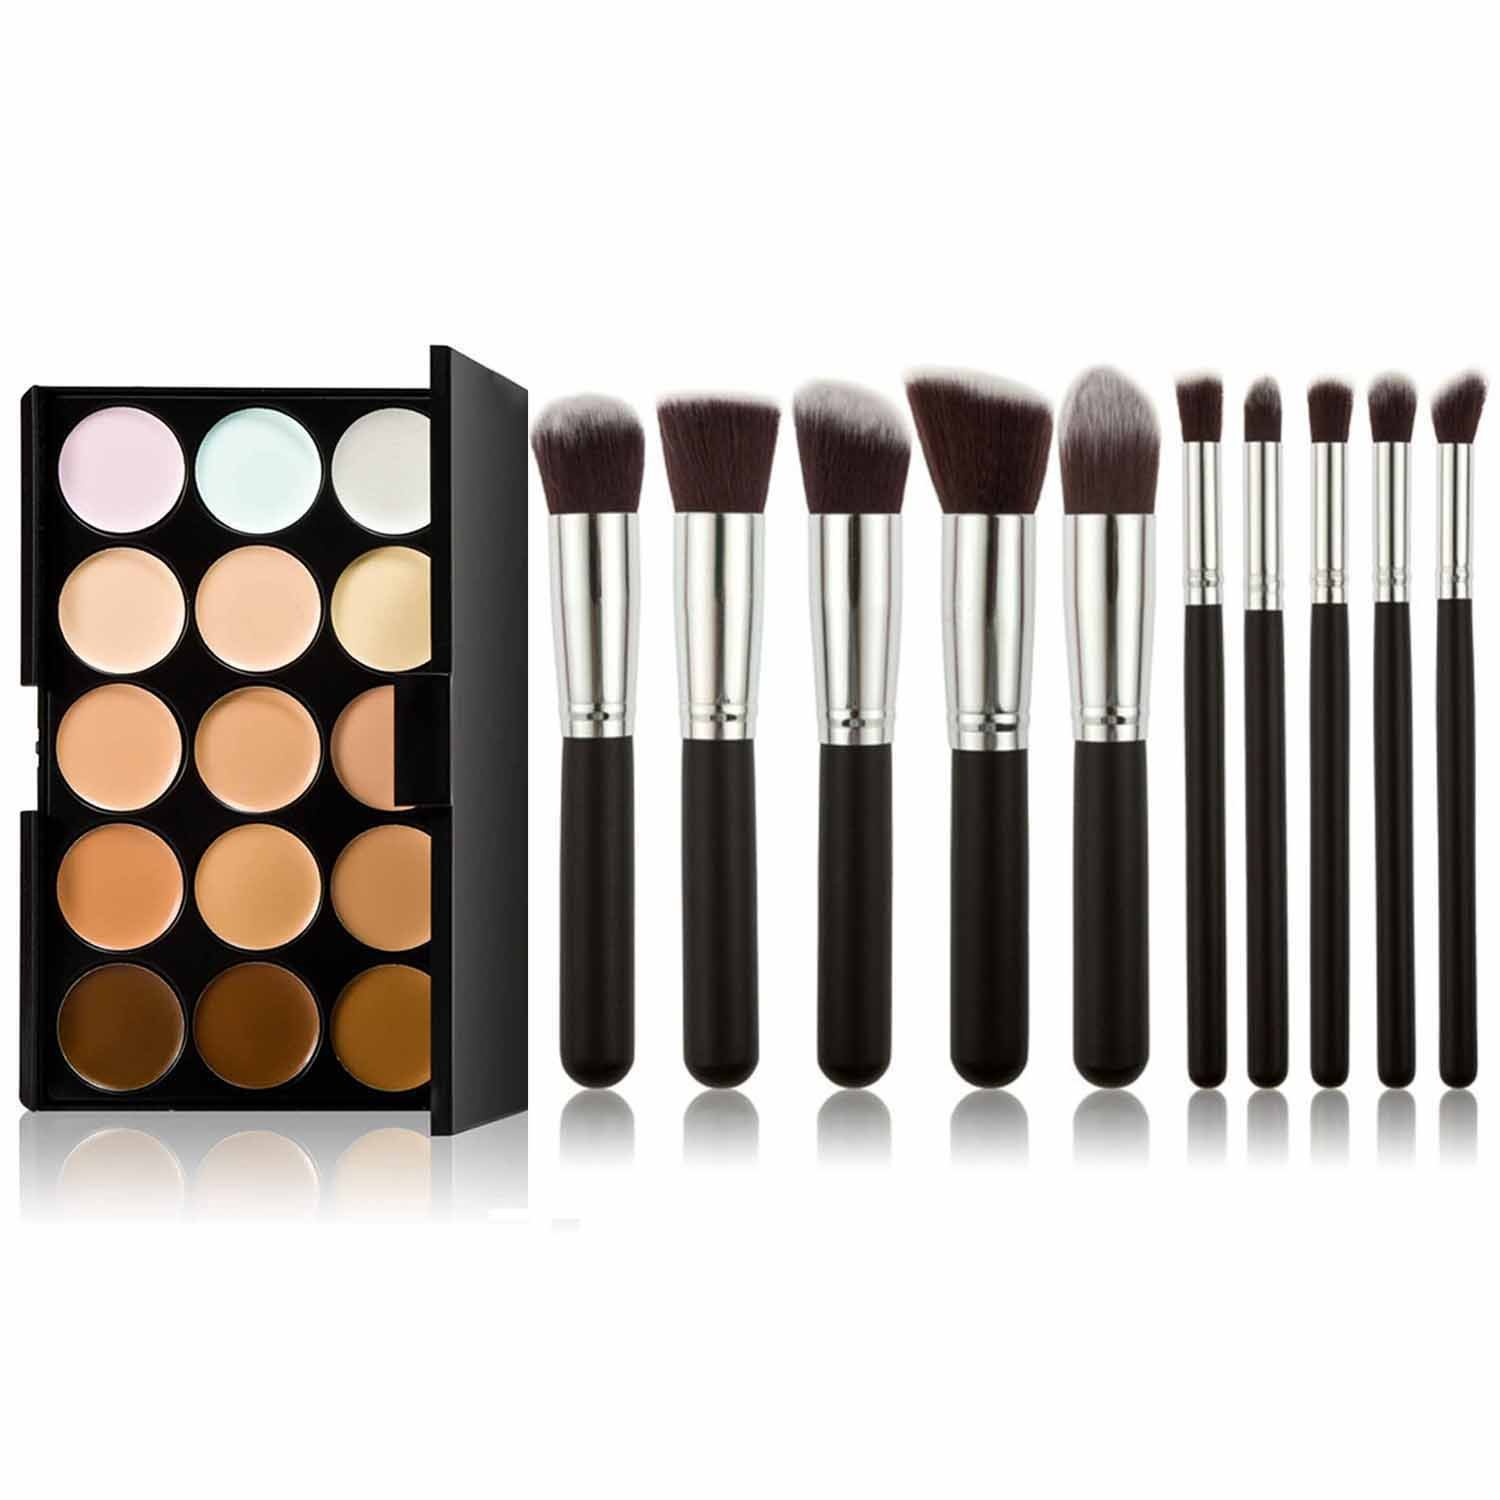 Elisona-15 Colors Cosmetic Make Up Concealer Palette Foundation Cream With Powder Brush